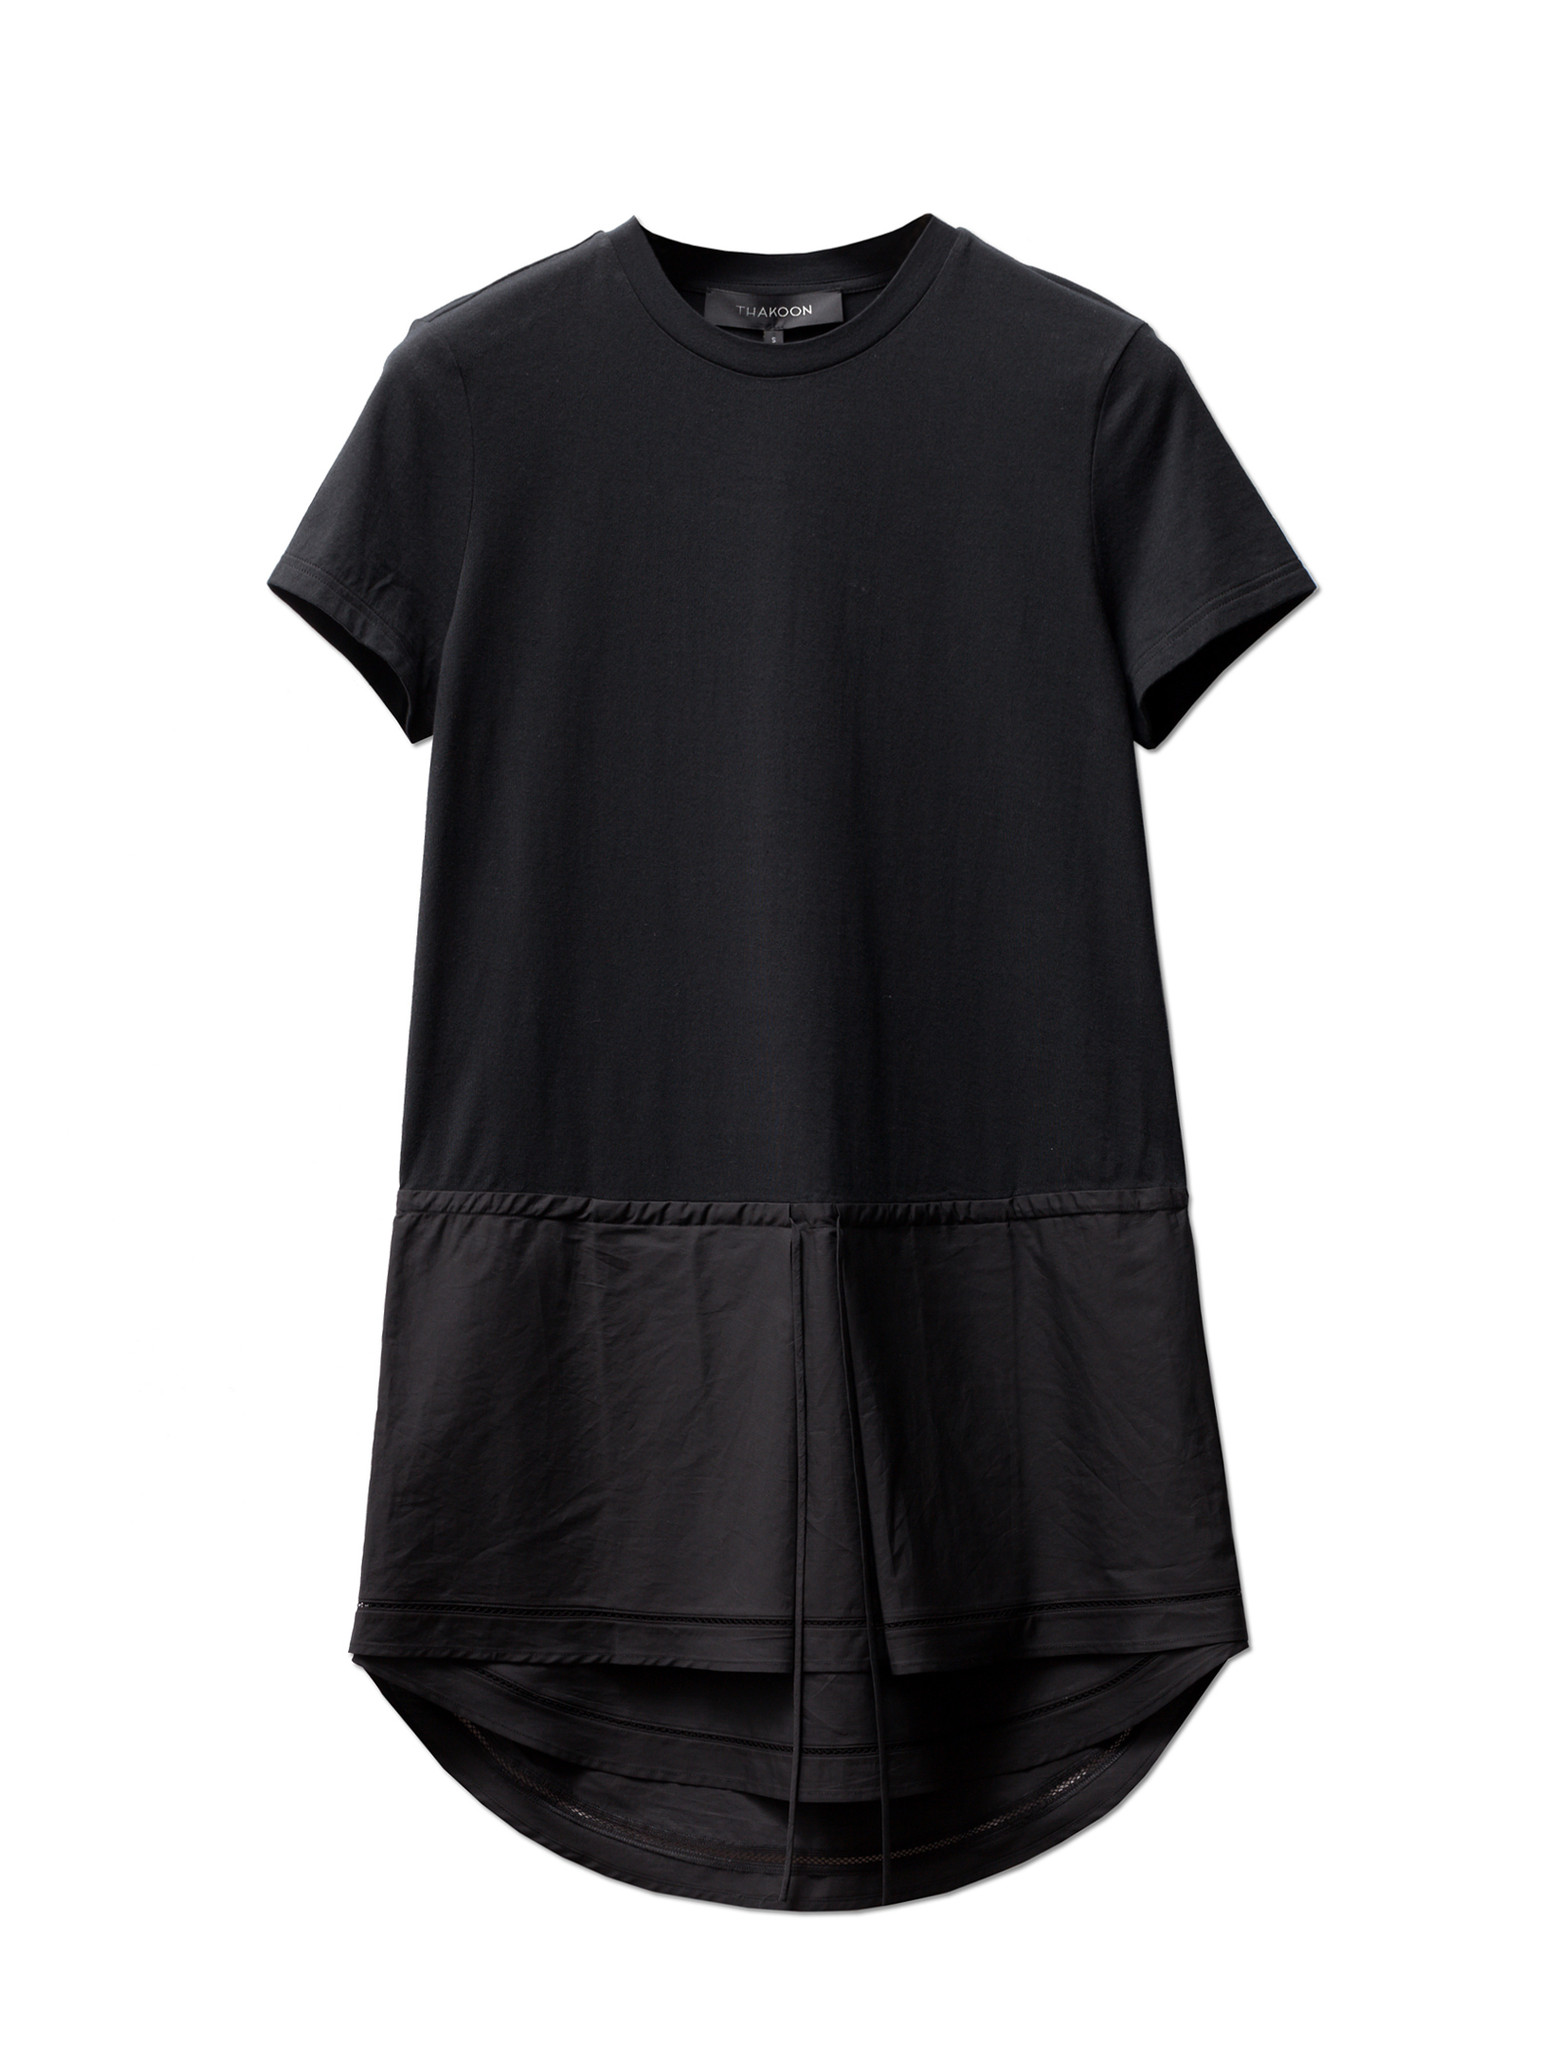 Performance Dress Shirts Flannel Shirts Little Black Dresses Wedding & Formal Dresses Petite Dresses Find women's tops for every occasion at Express, including sweaters, tees & dressy tops that are perfect for a day in the office or a girl's night on the town.